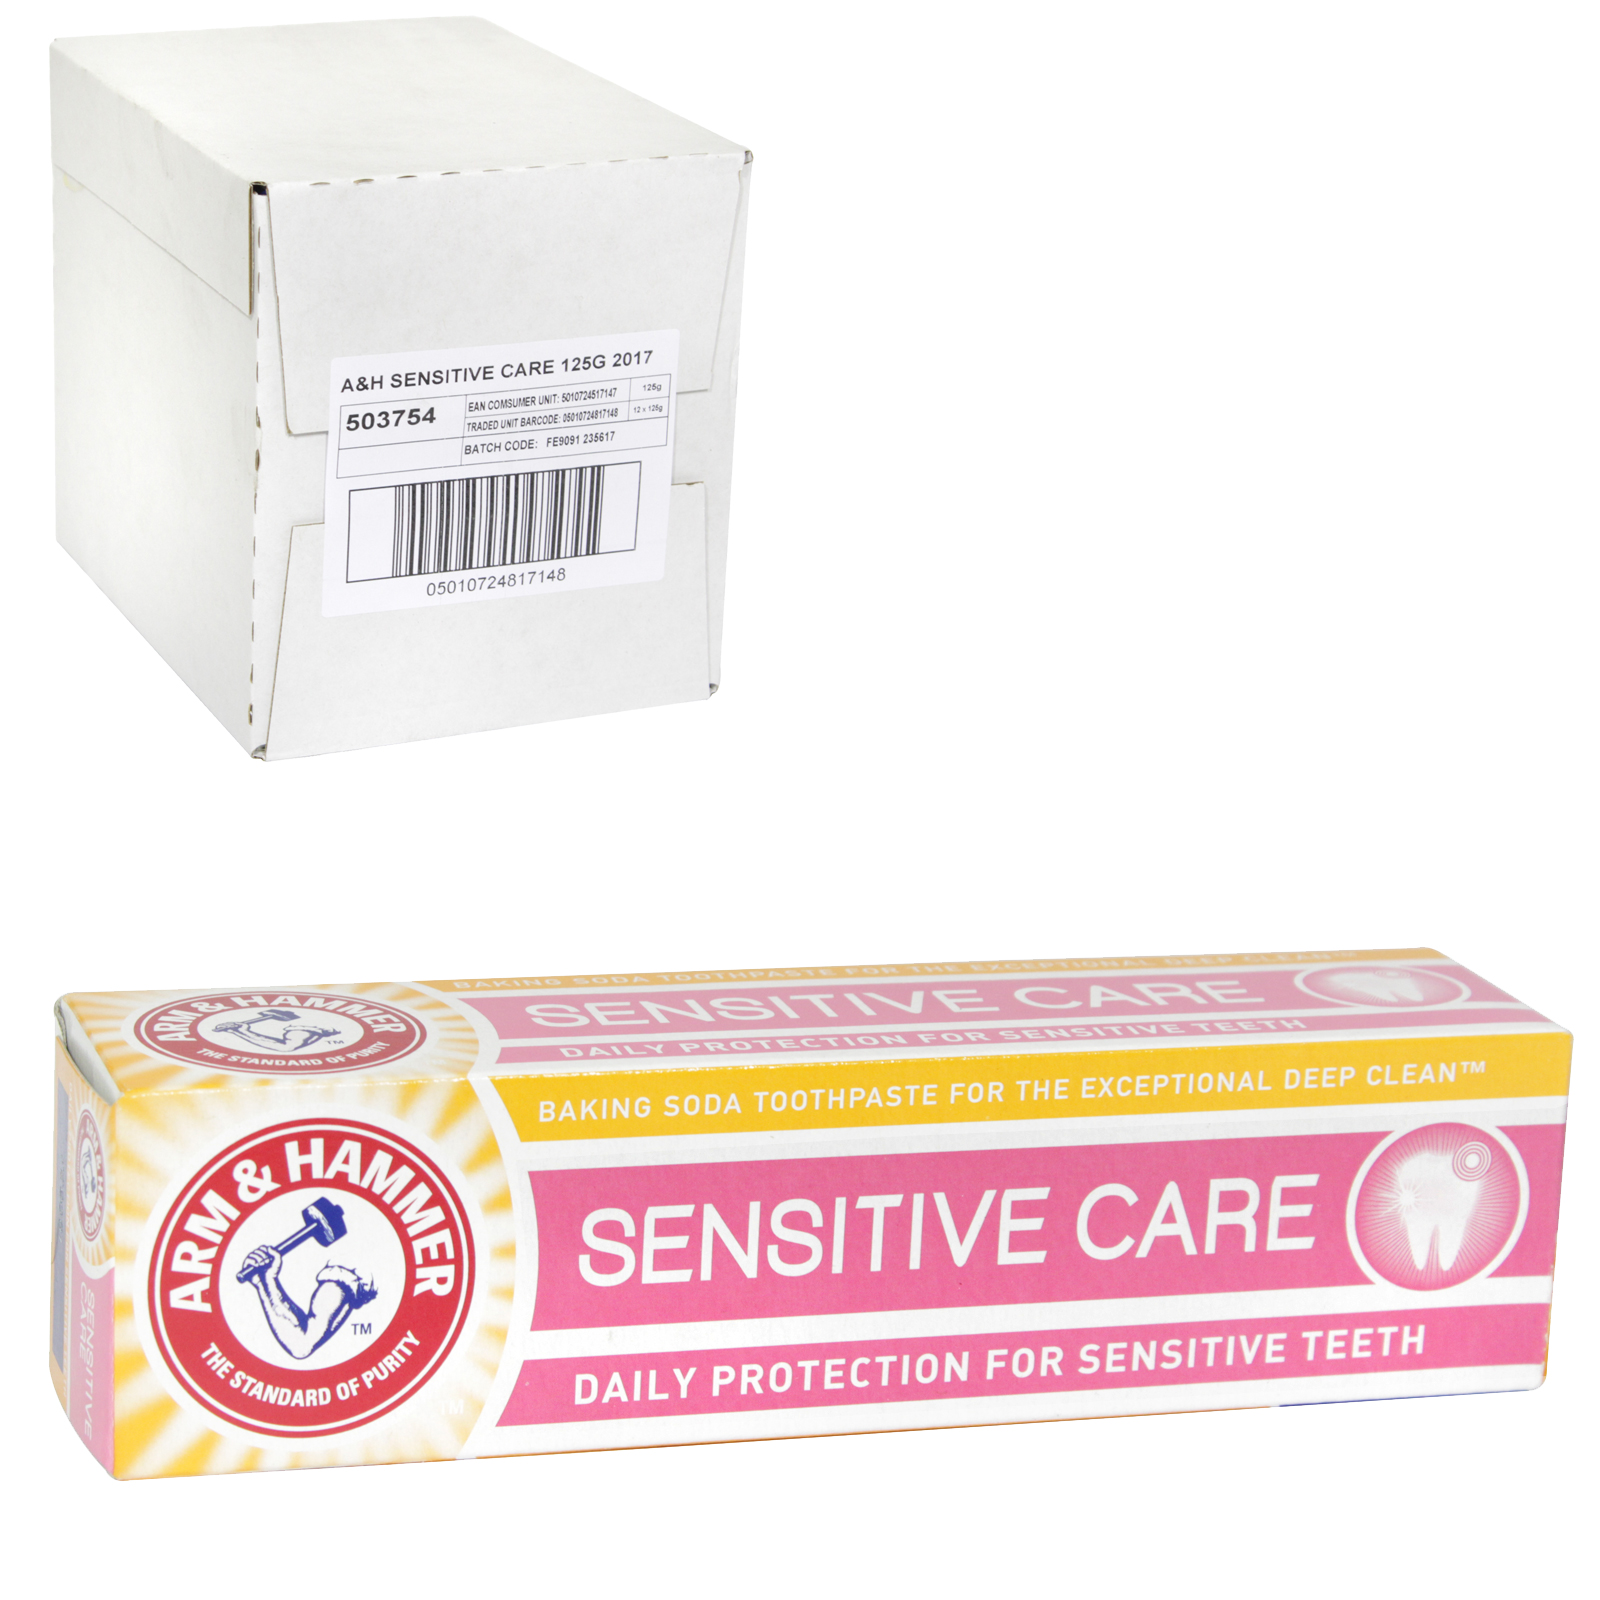 ARM+HAMMER TOOTHPASTE 125G SENSITIVE CARE X12